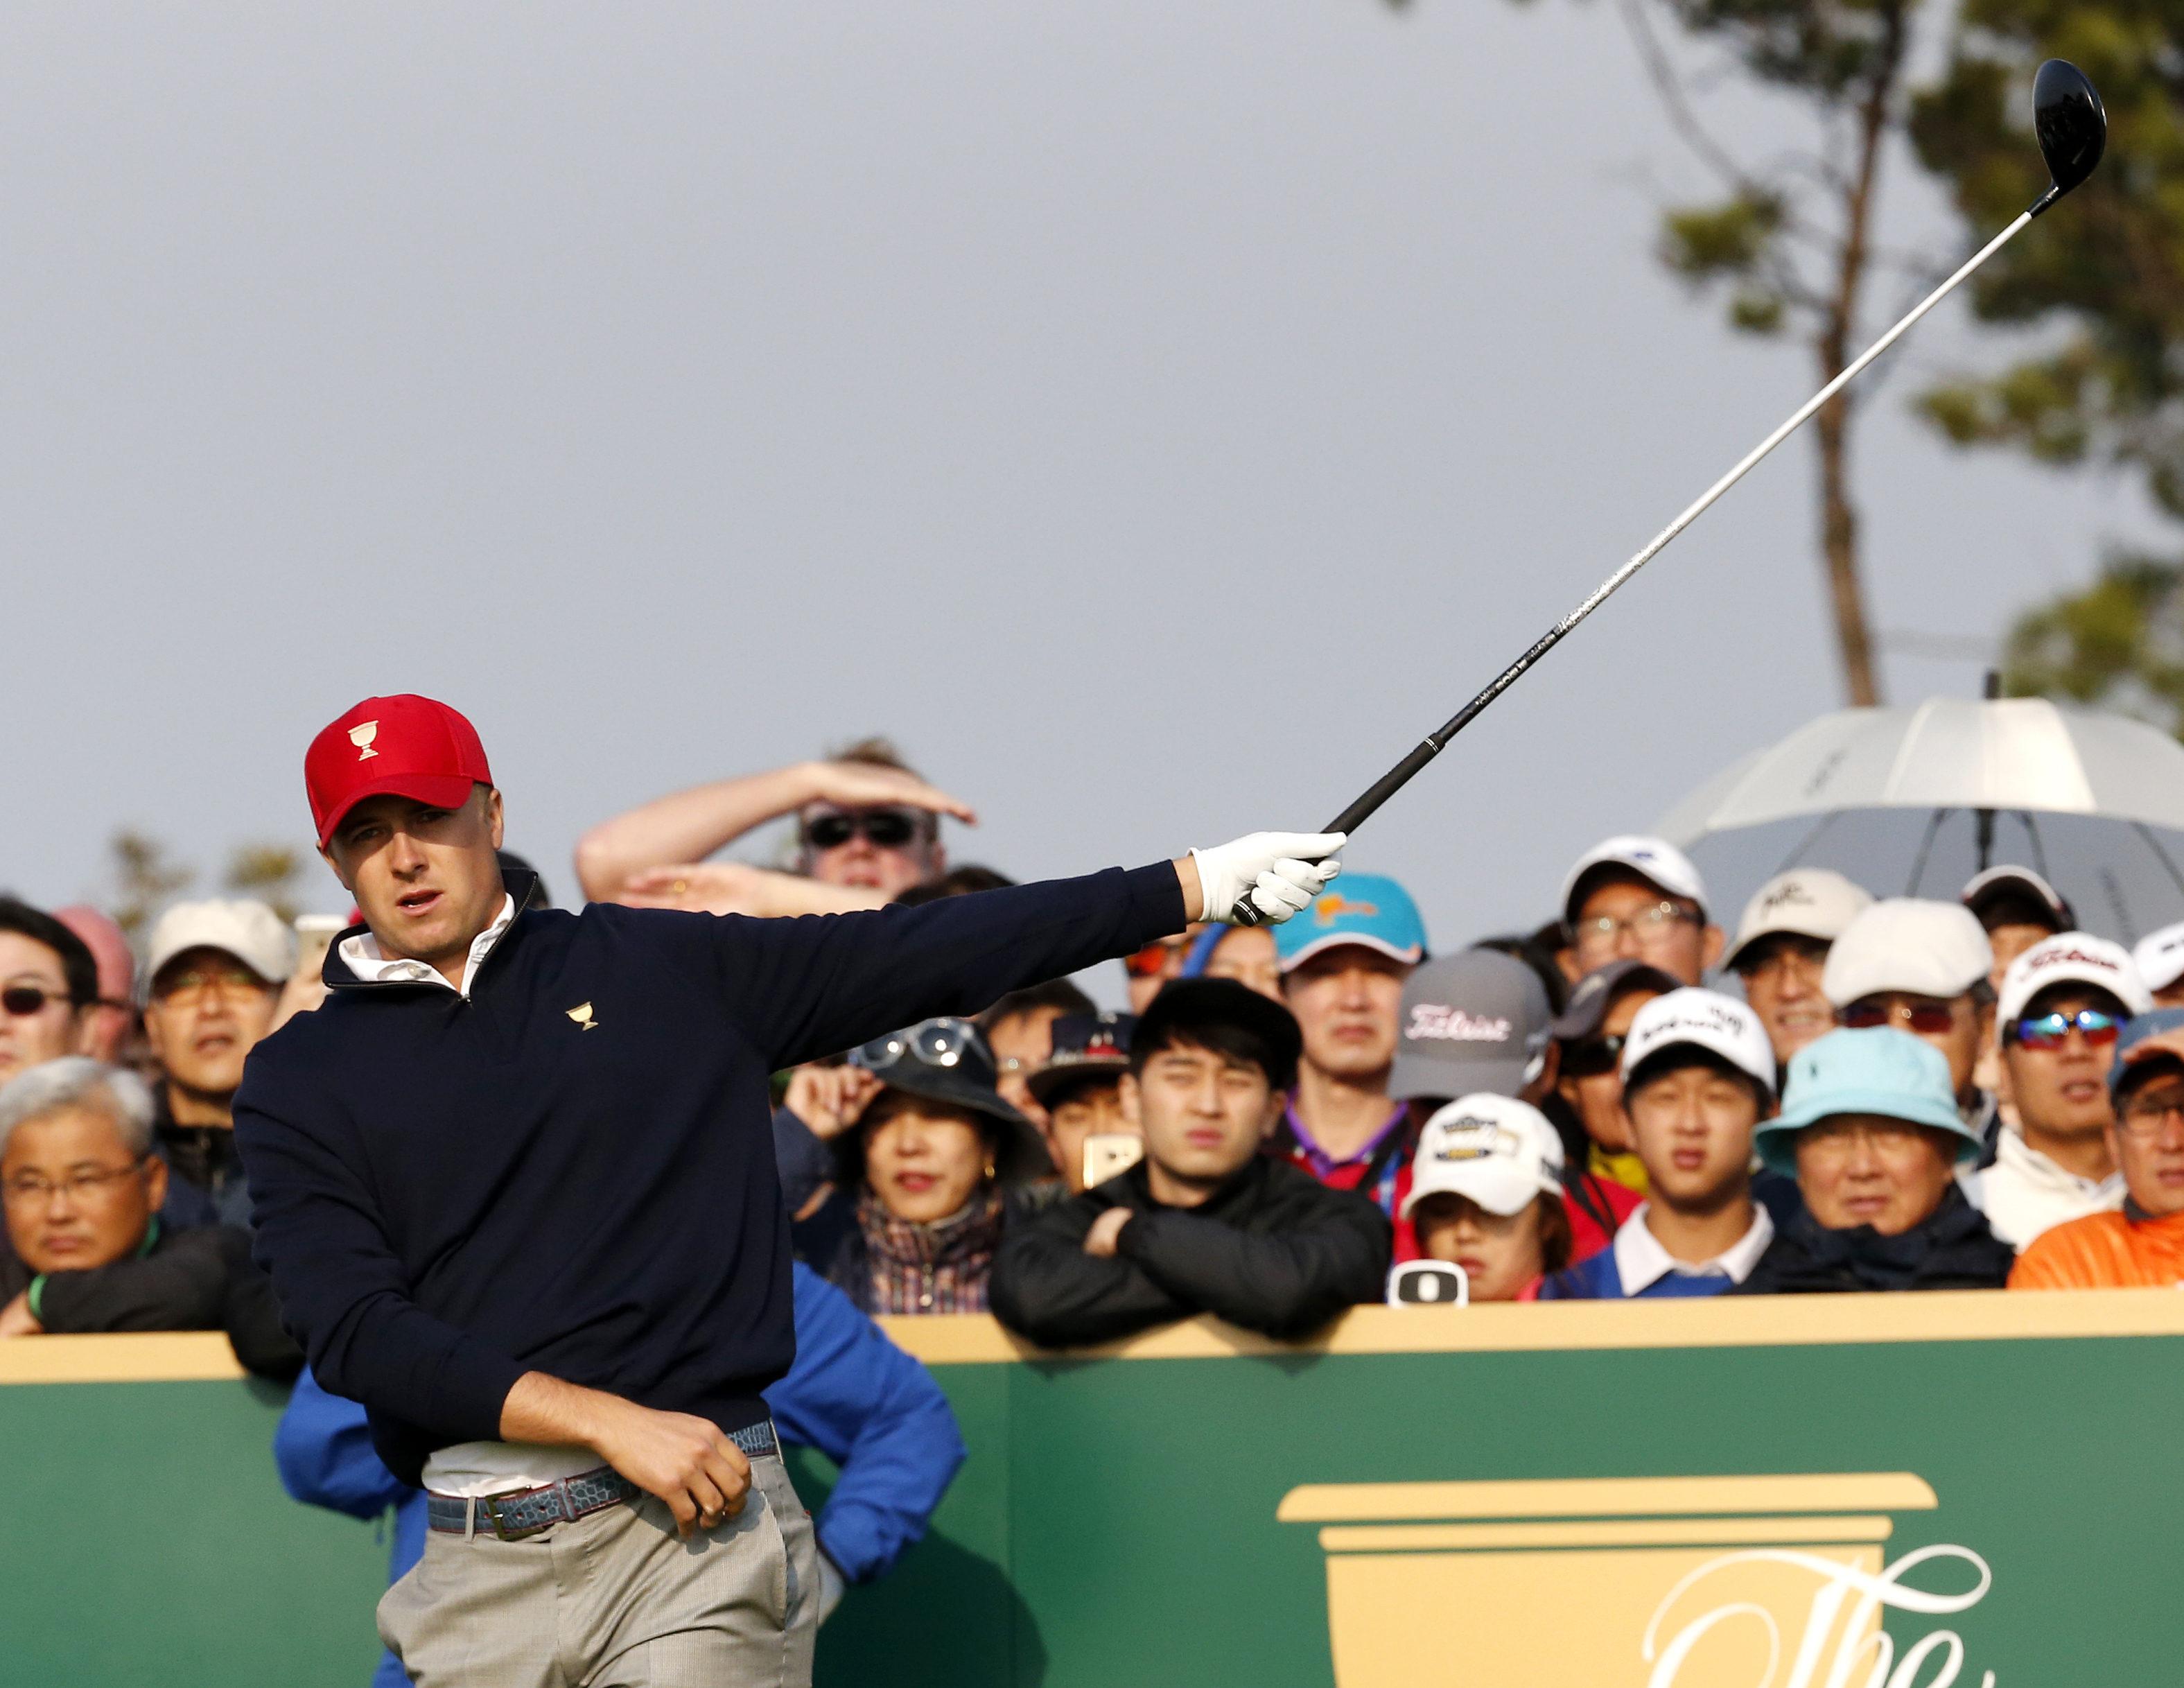 United States' Jordan Spieth reacts after his tee shot on the second hole during his foursome match at the Presidents Cup golf tournament at the Jack Nicklaus Golf Club Korea, in Incheon, South Korea, Saturday, Oct. 10, 2015.(AP Photo/Lee Jin-man)